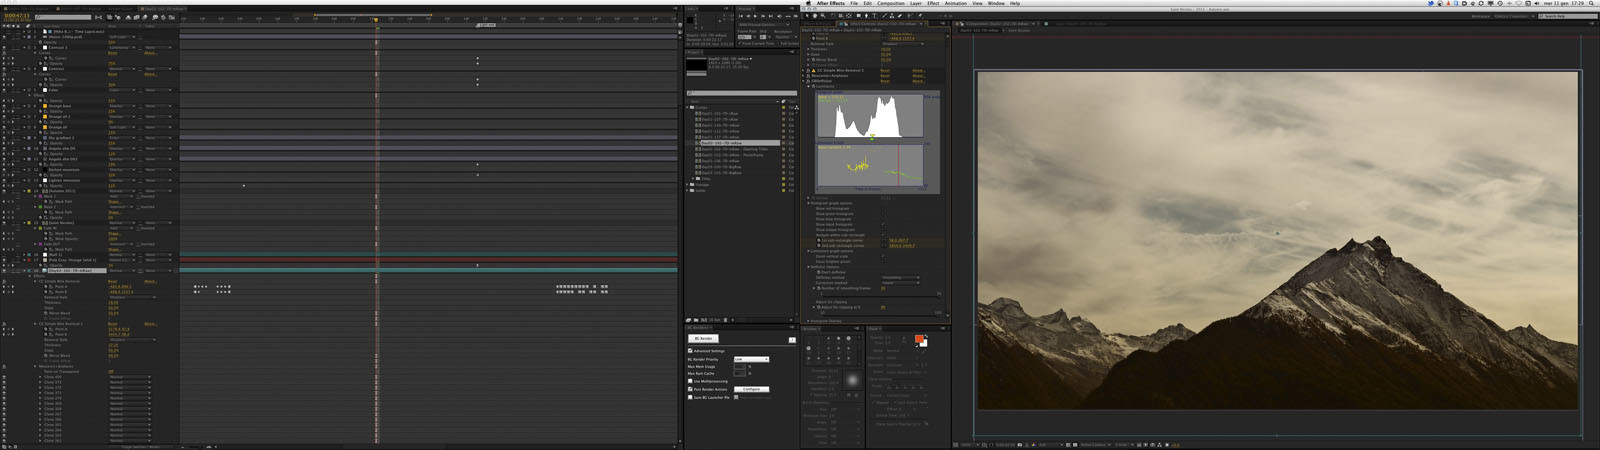 TLI Workshop Saint Nicolas Post backstage 12 After Effects Workshop Timelapse 2011, il video finale del docente